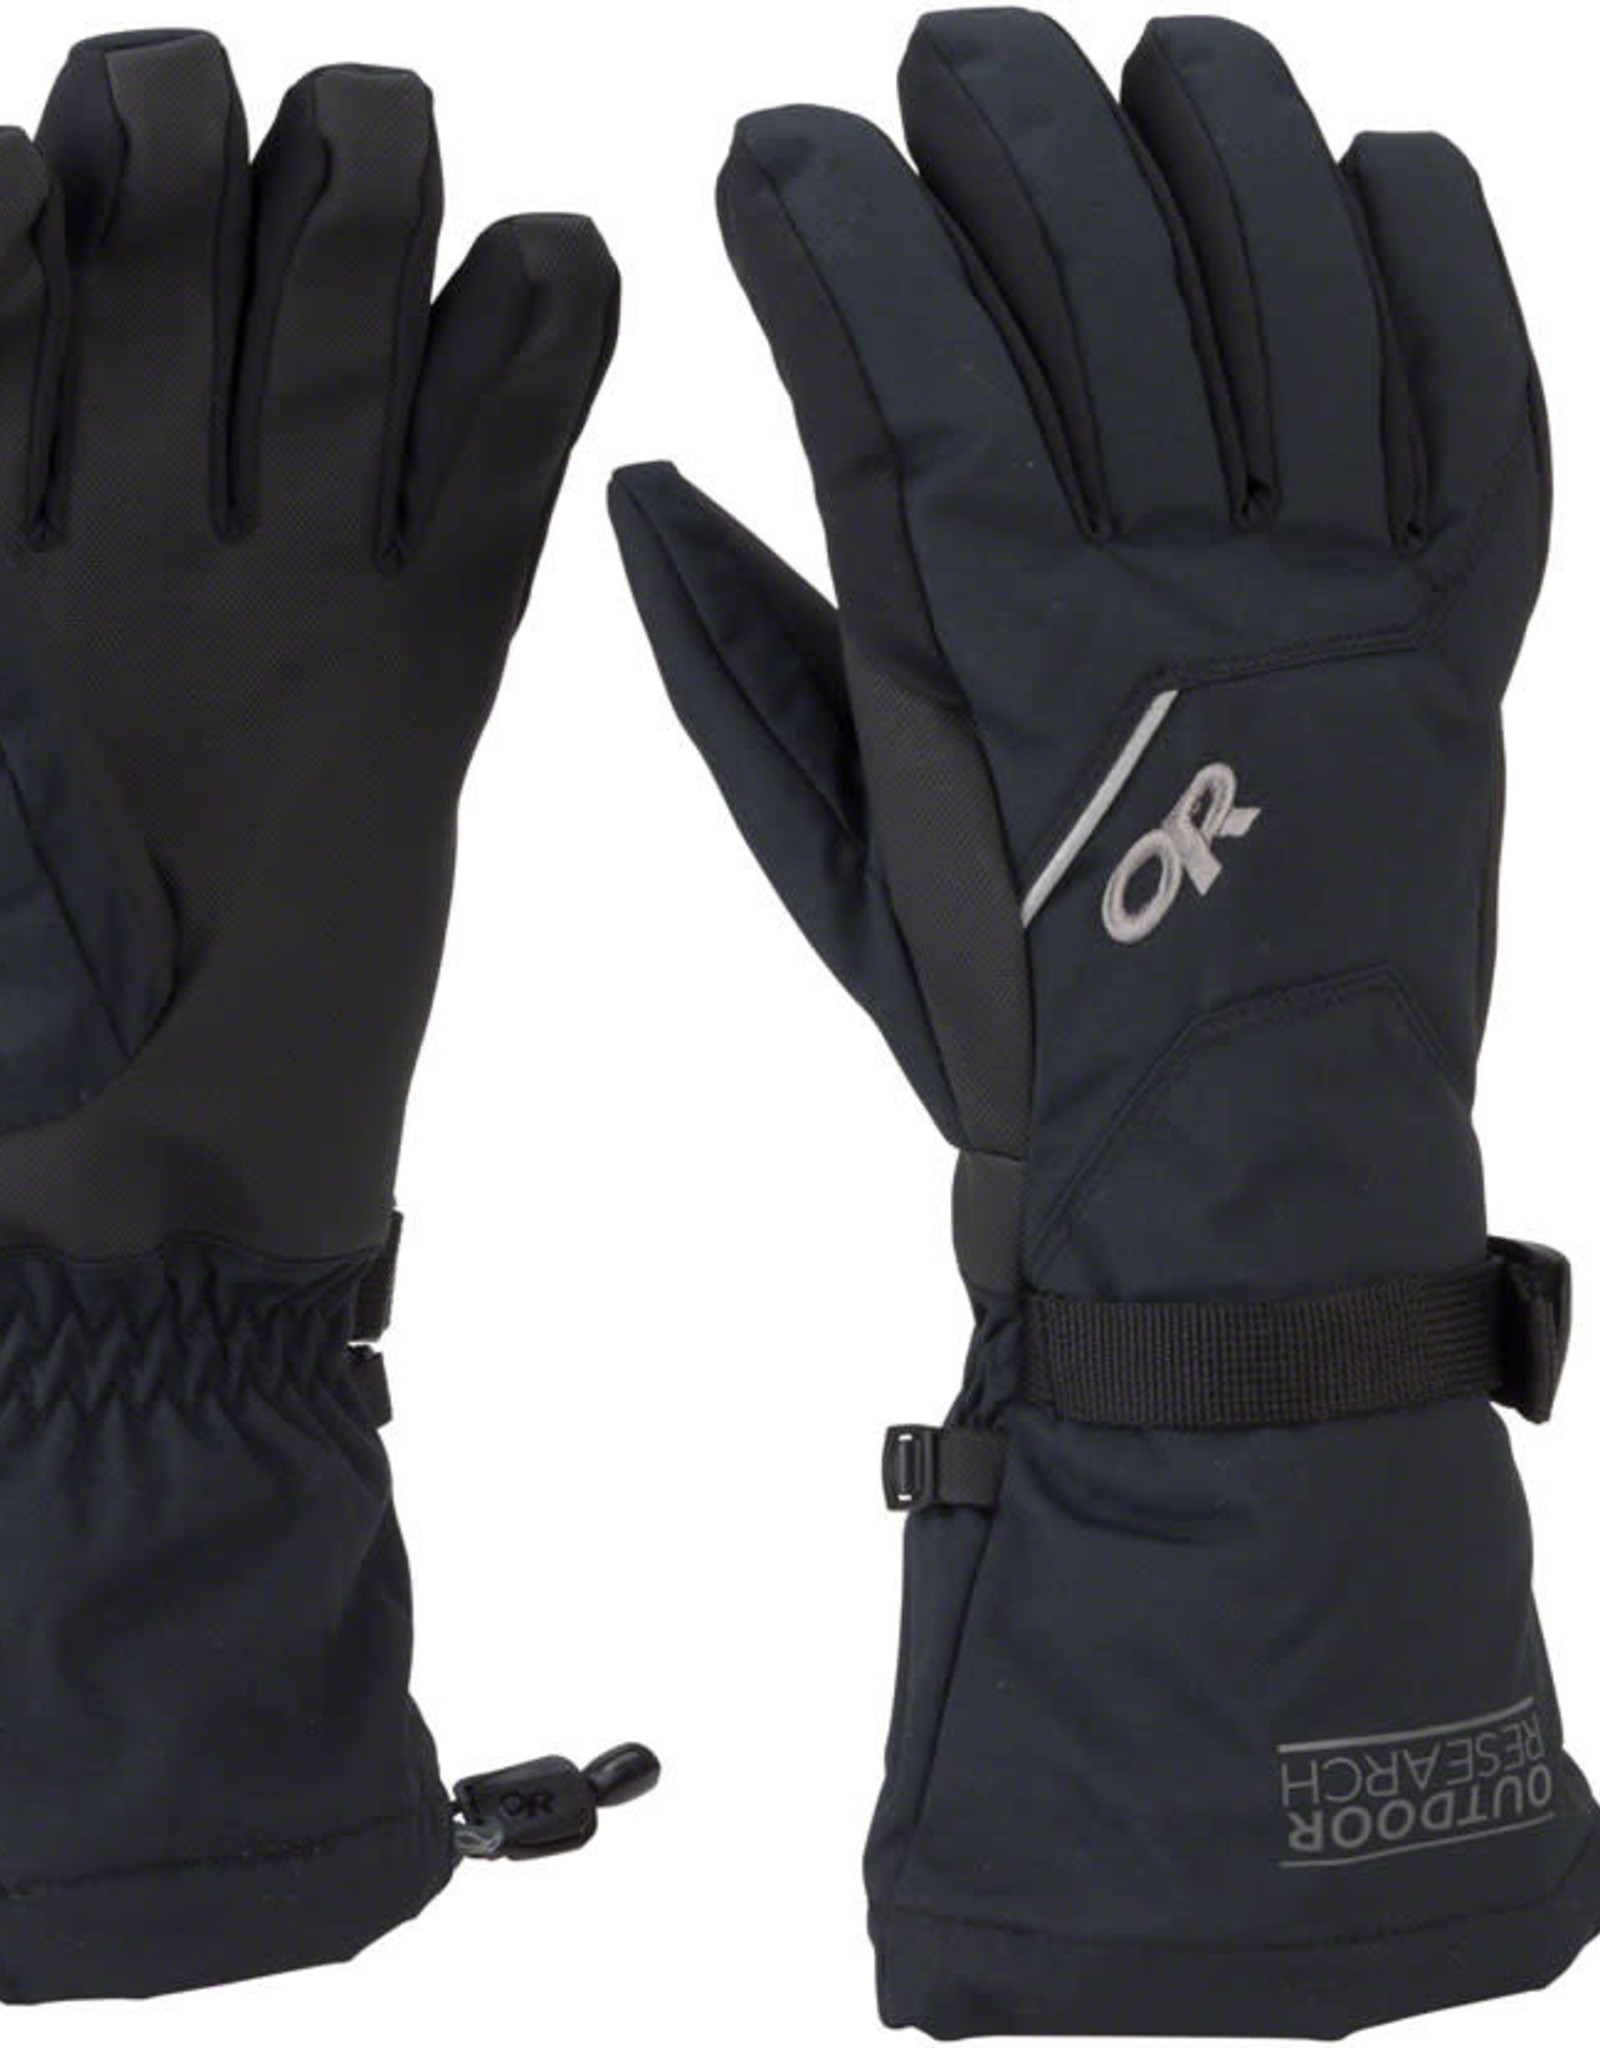 Outdoor Research Outdoor Research Adrenaline Gloves - Large